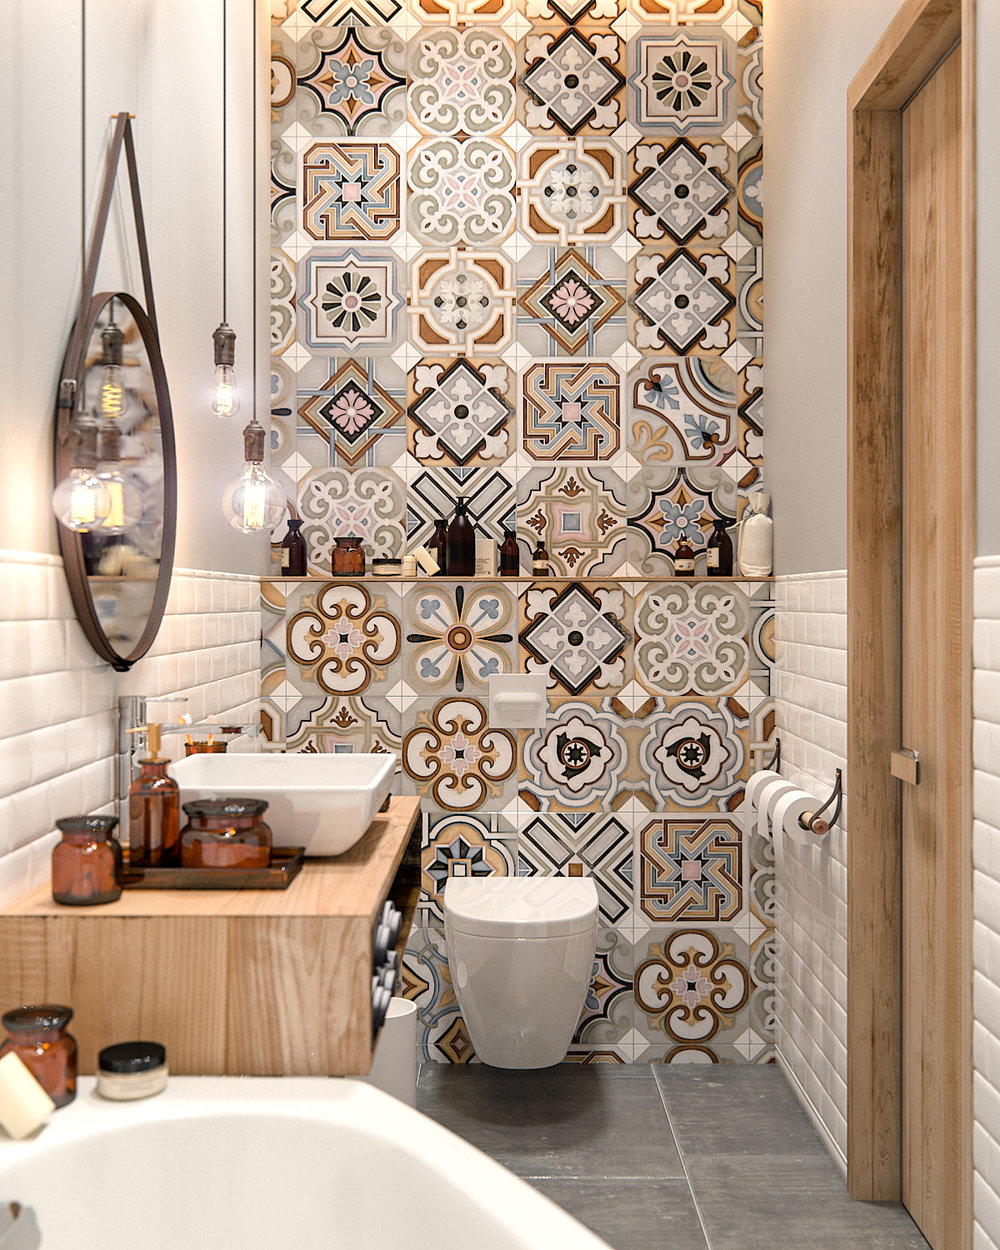 Patterned Tiles above Toilet.jpg